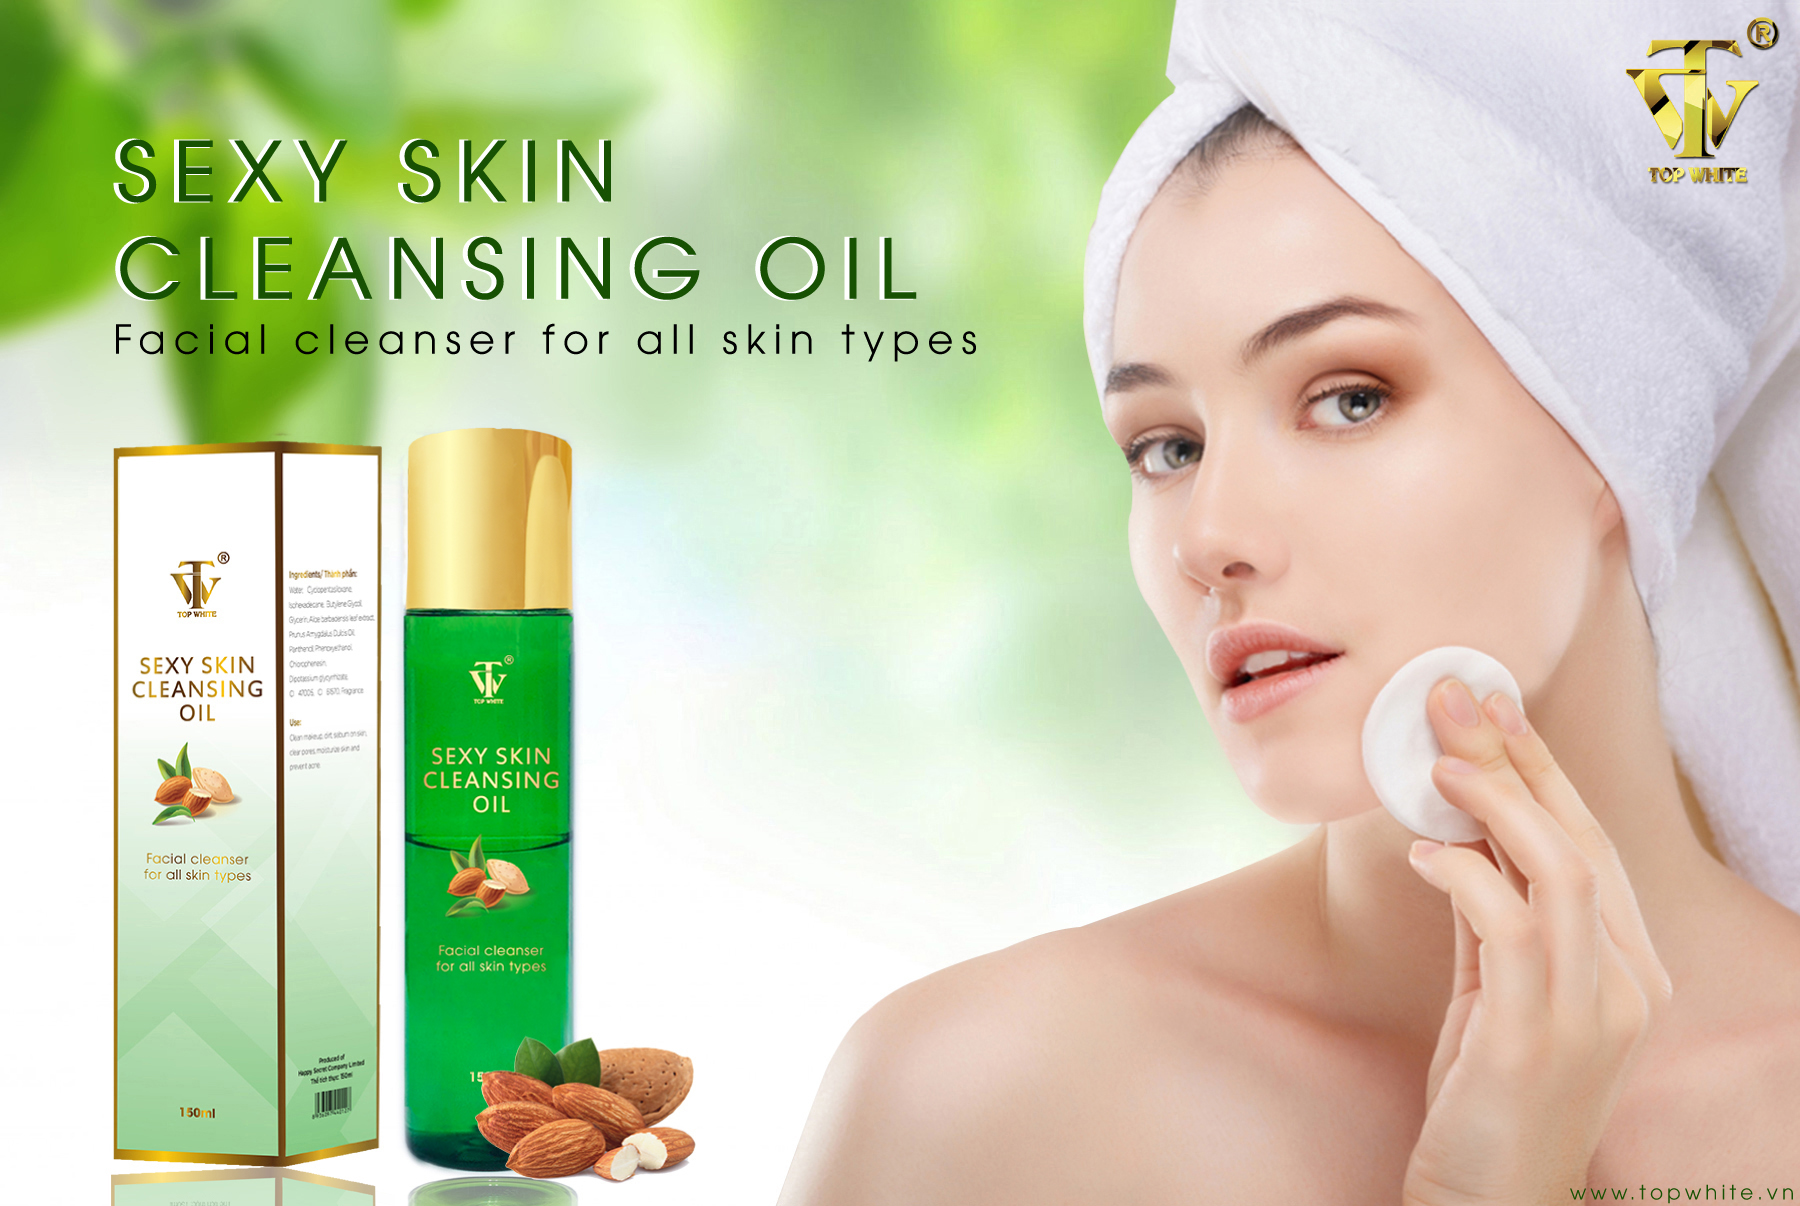 top-white-dau-tay-trang-sexy-skin-cleansing-oil-banner